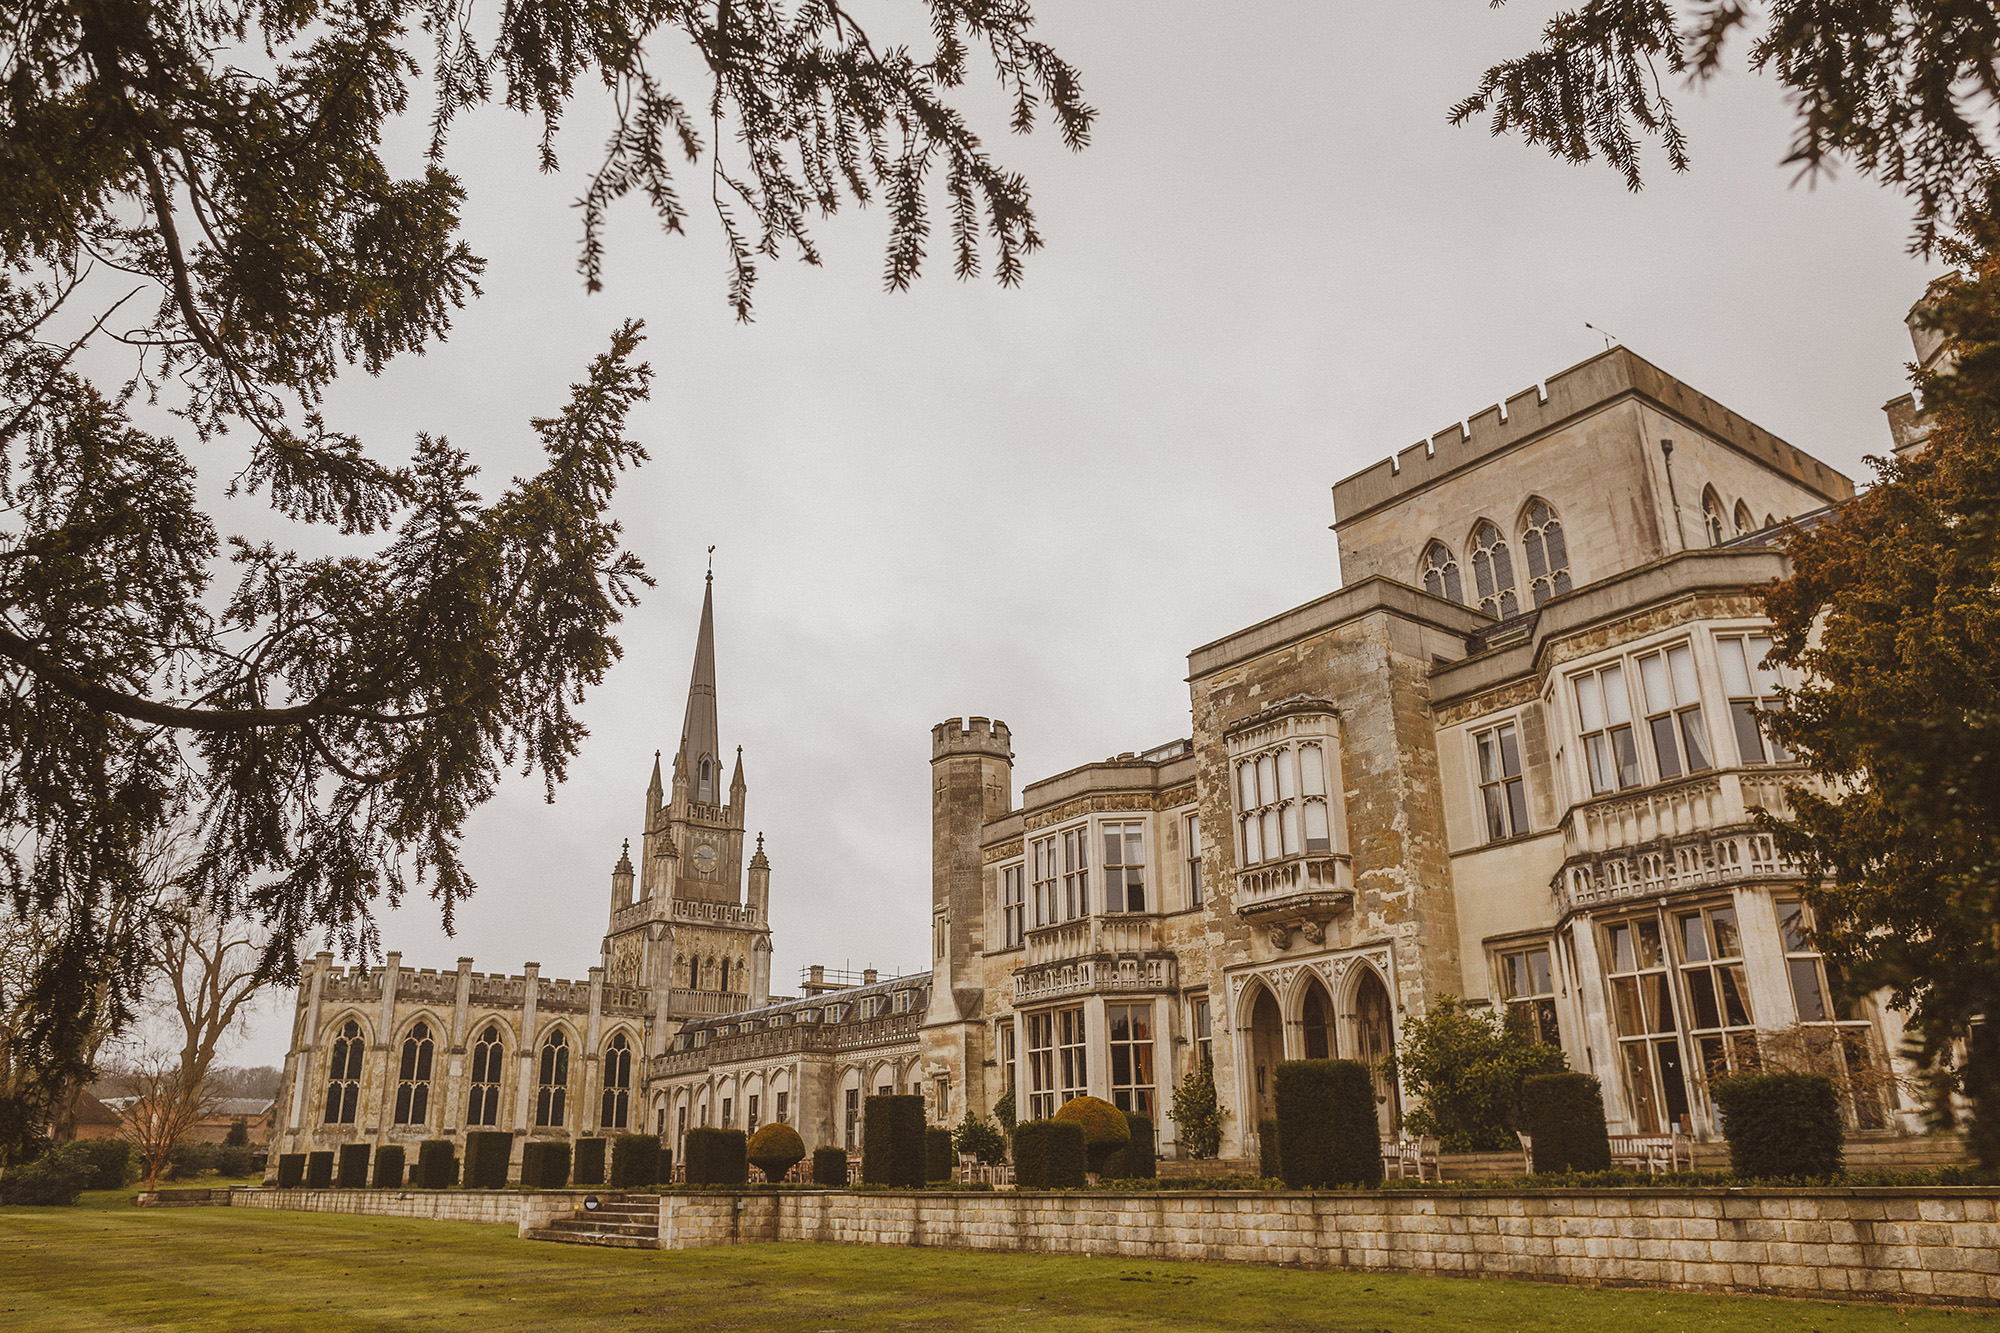 Entrance to Ashridge House - One of England's best wedding manors - photo by Ed Peers Photography